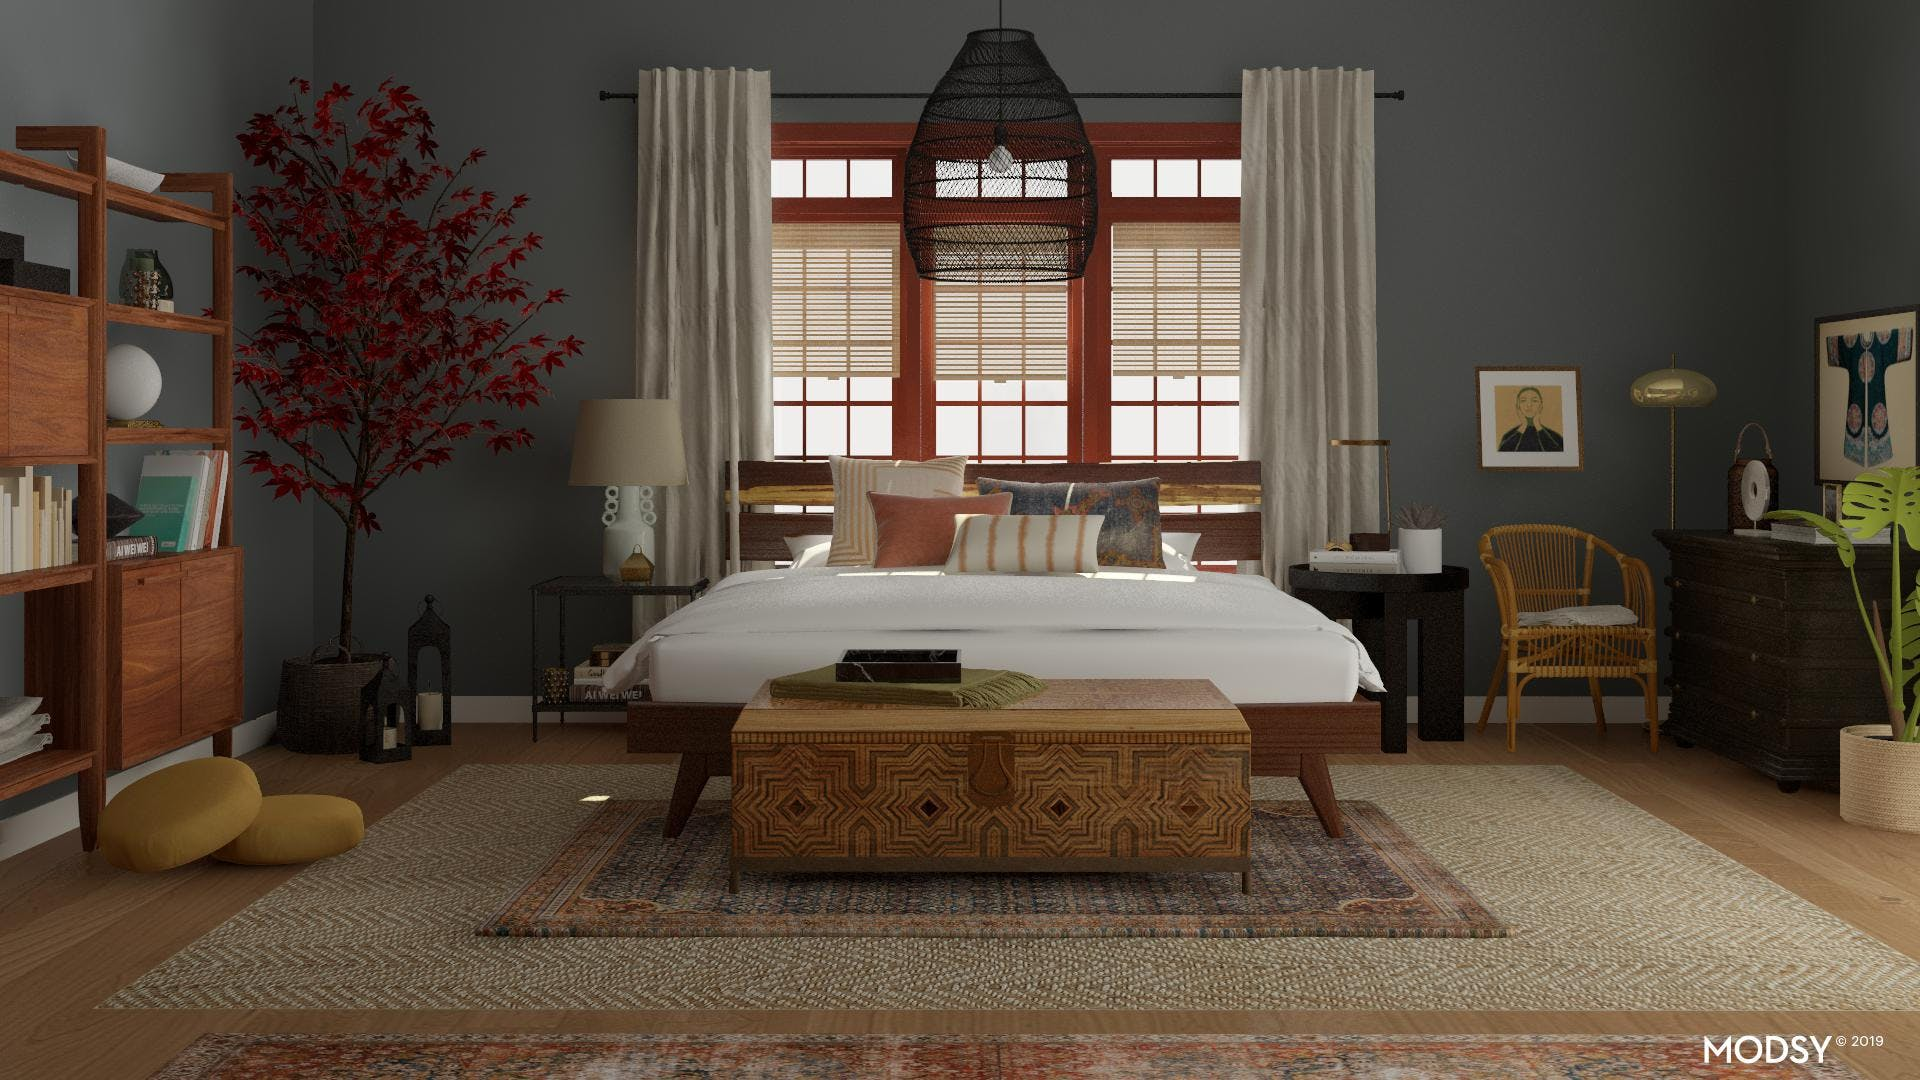 Eclectic Bedroom with a Moody Edge